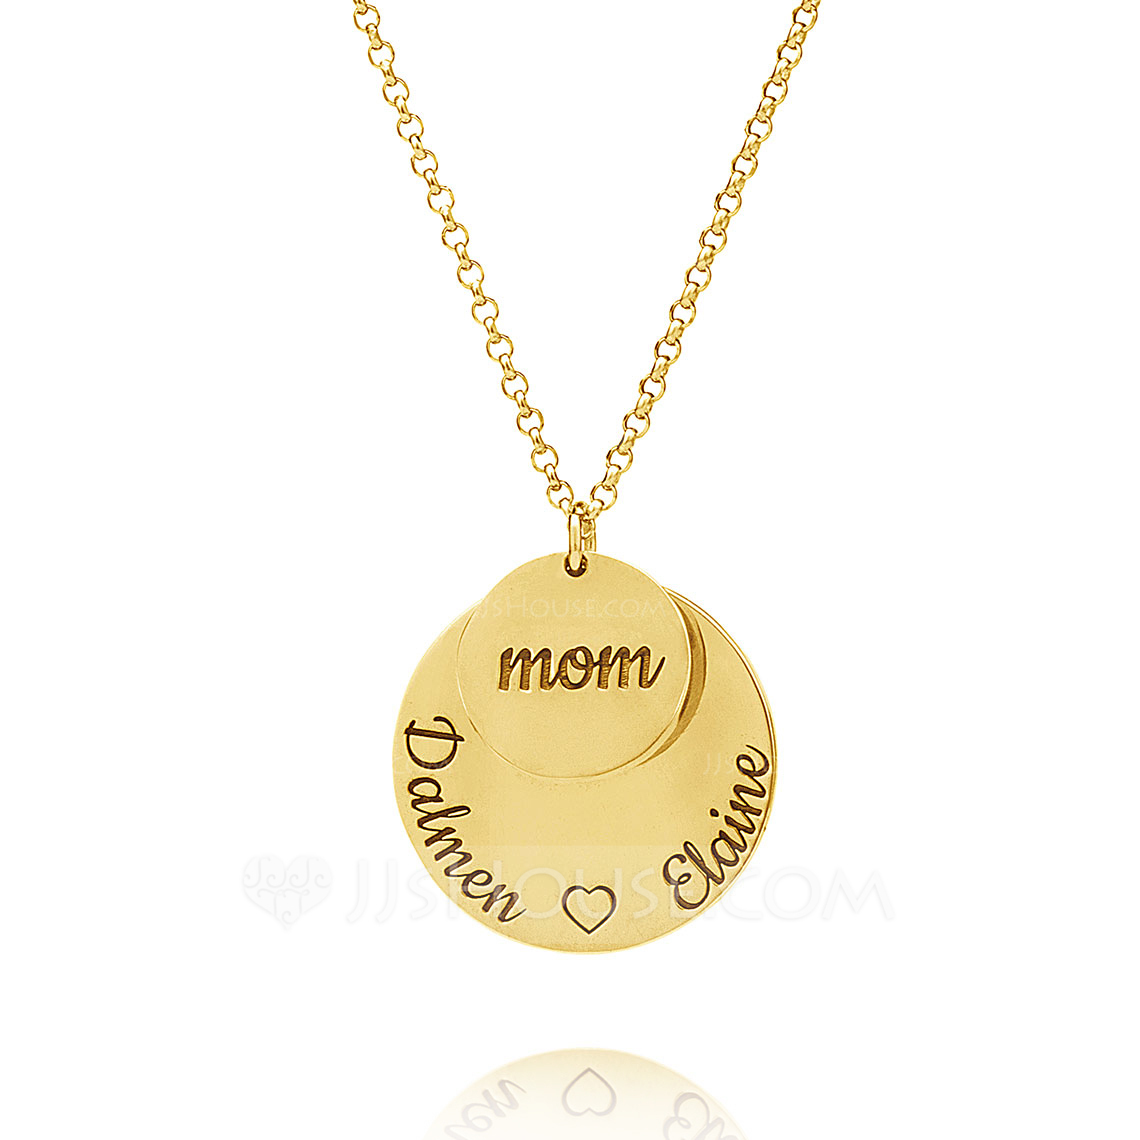 Custom 18k Gold Plated Engraving/Engraved Circle Layered Three Circle Necklace With Kids Names - Birthday Gifts Mother's Day Gifts